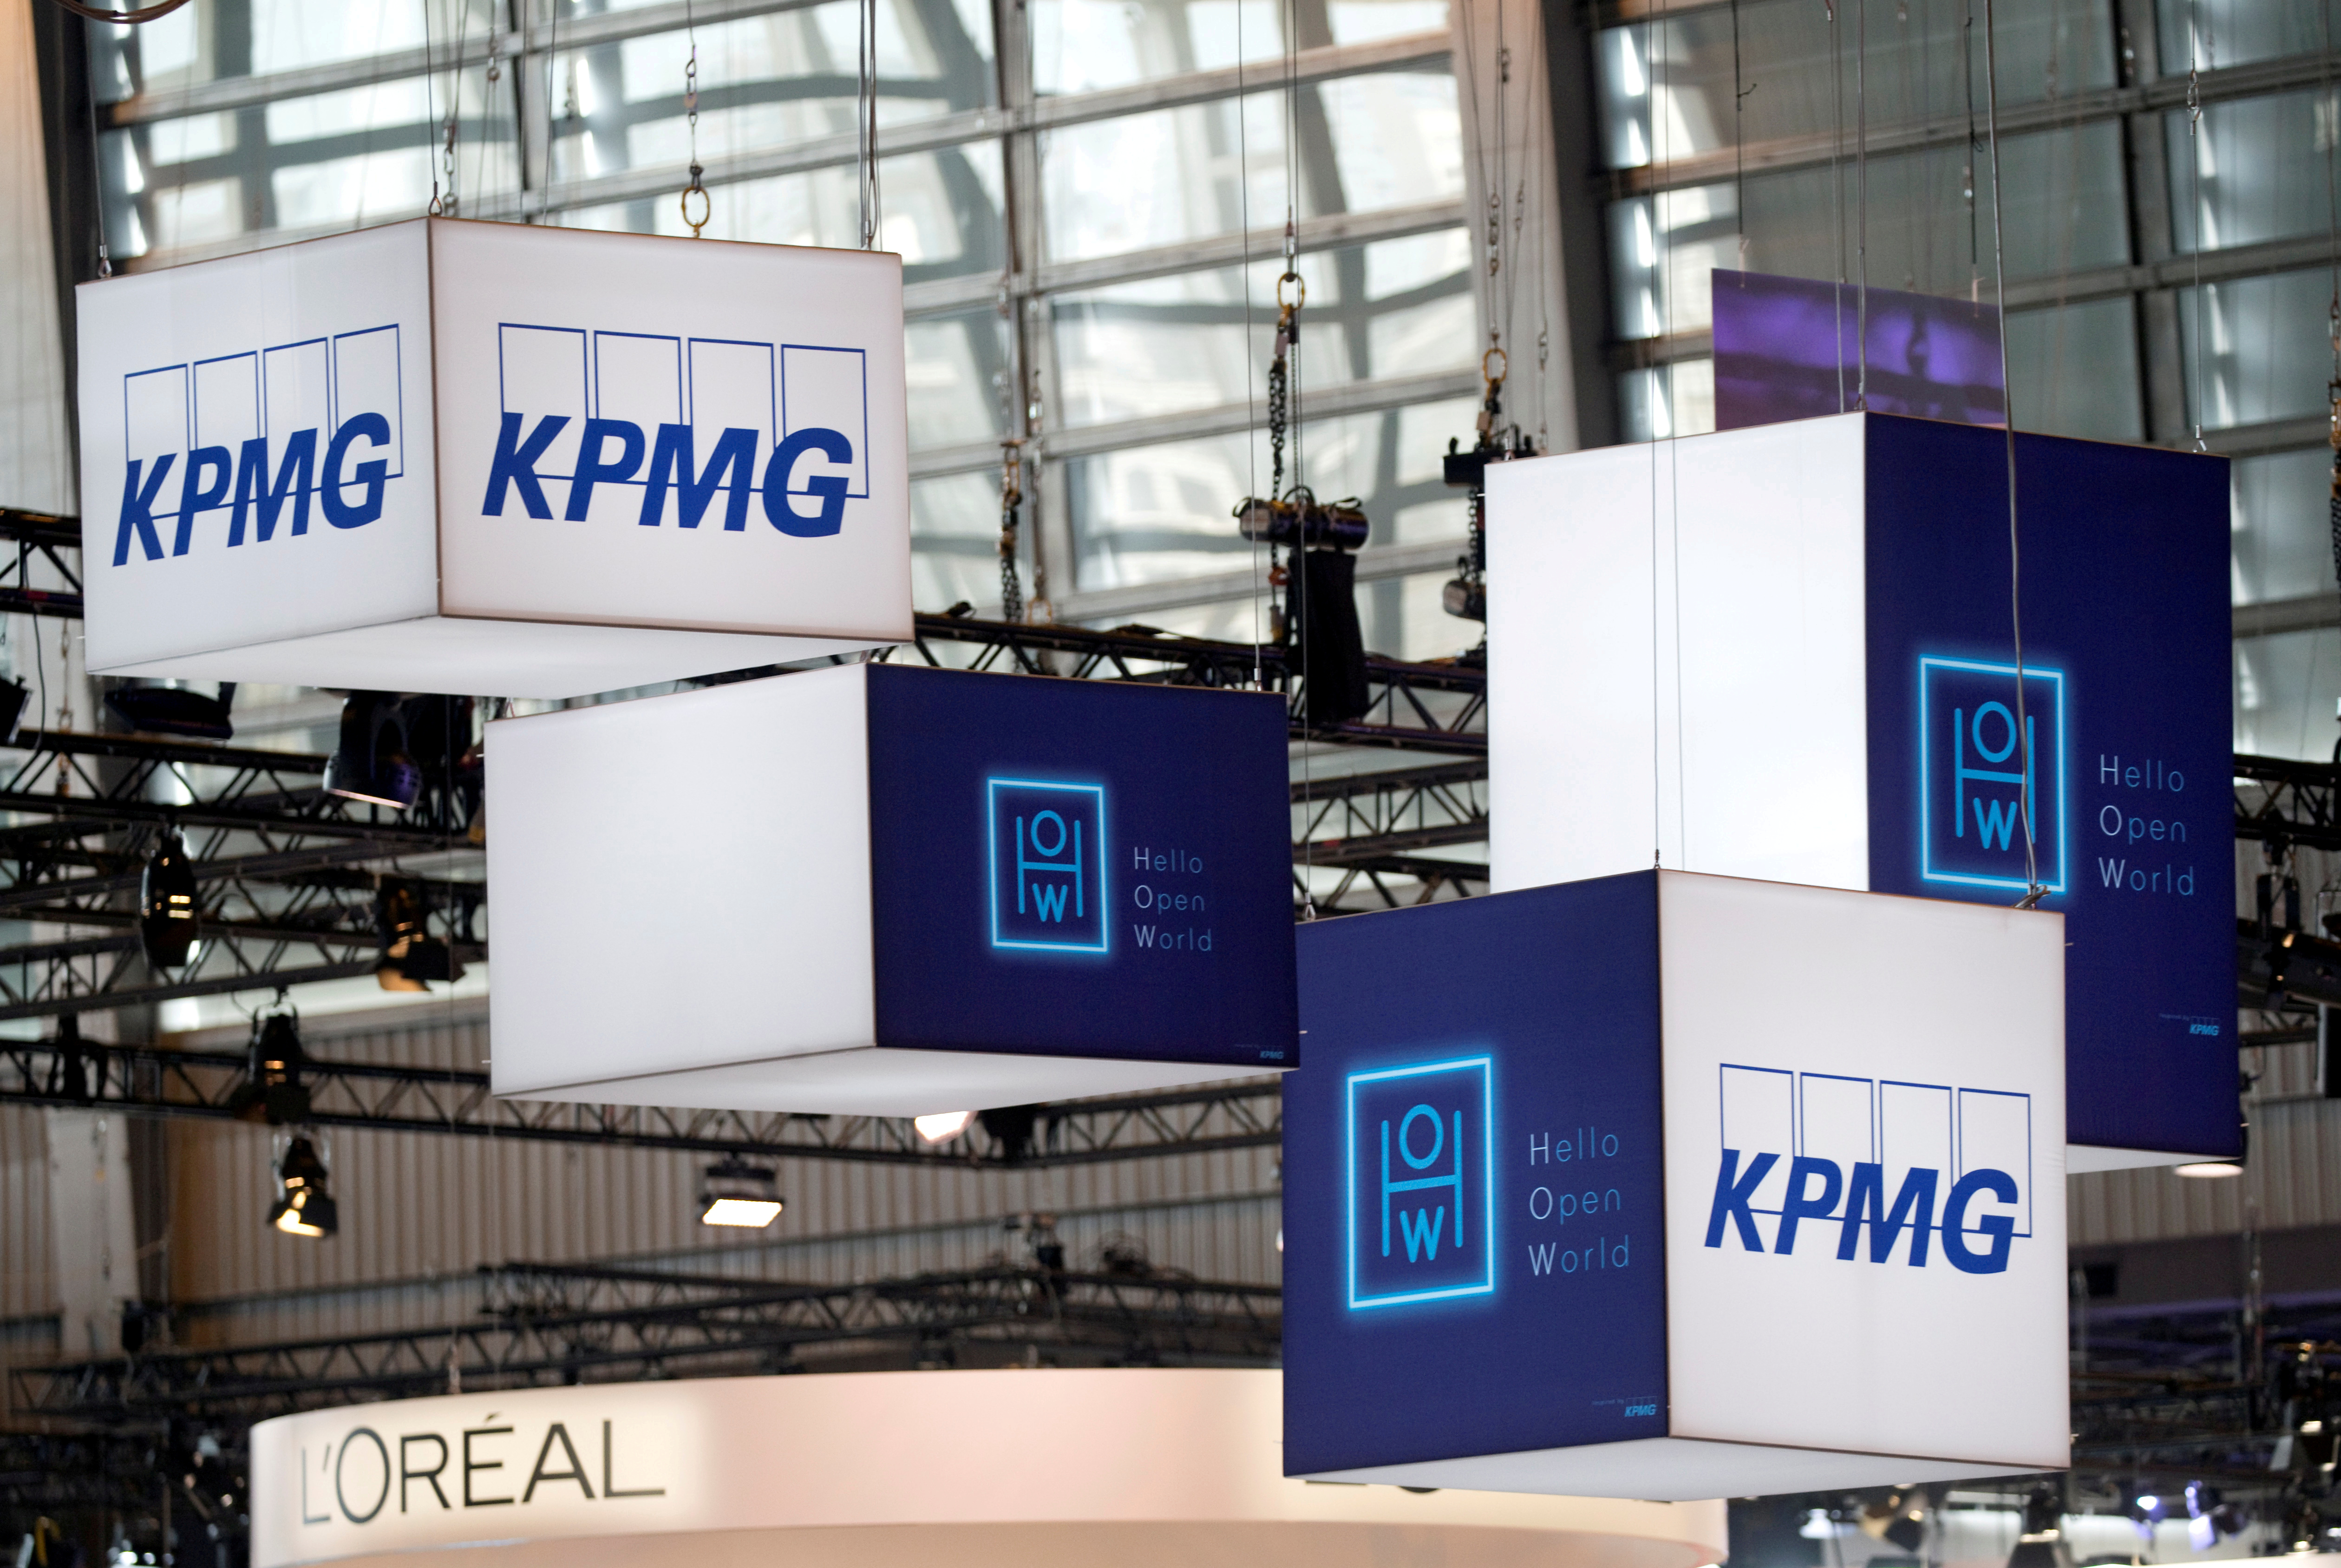 The logo of KPMG, a professional service company, is pictured during the Viva Tech start-up and technology summit in Paris, France, May 25, 2018. REUTERS/Charles Platiau/File Photo